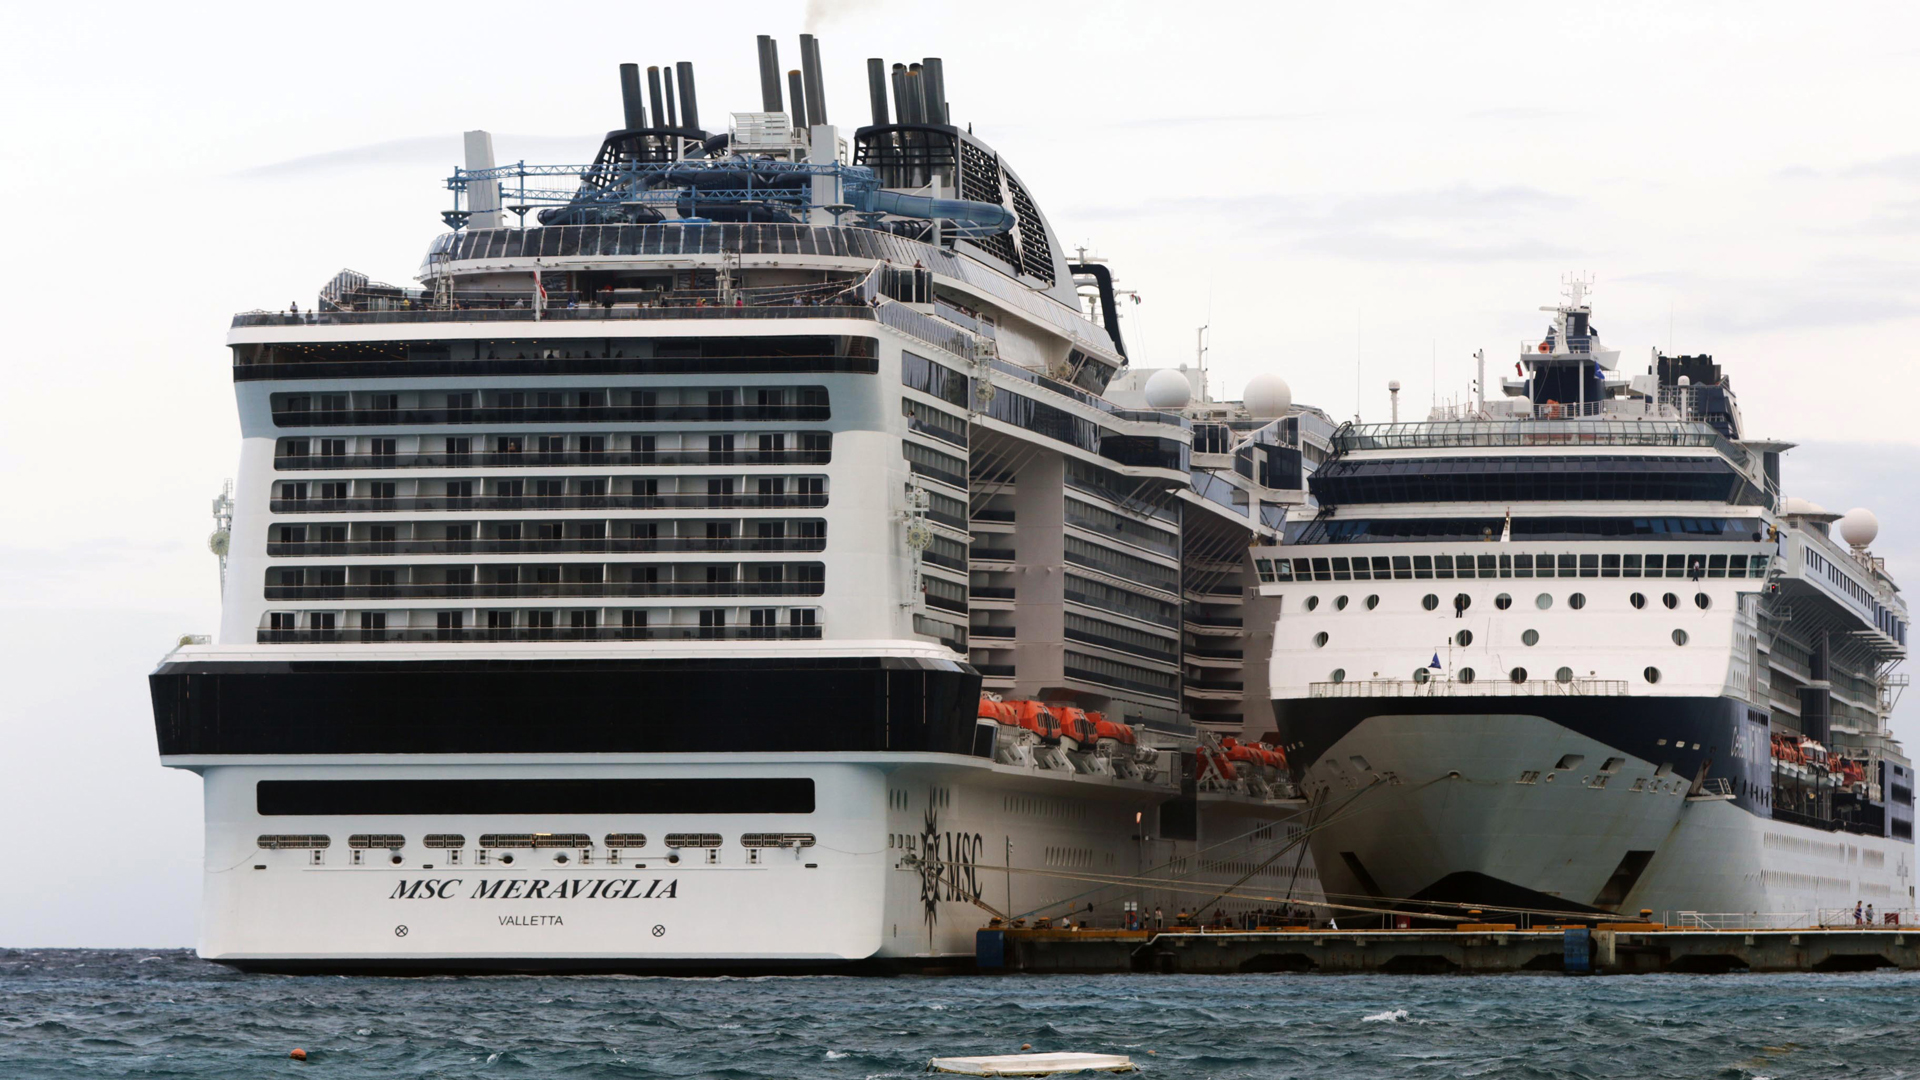 MSC Merviglia cruise ship, left, is seen in Cozumel, Mexico, on Feb. 27, 2020. (Credit: JOSE CASTILLO/AFP via Getty Images)